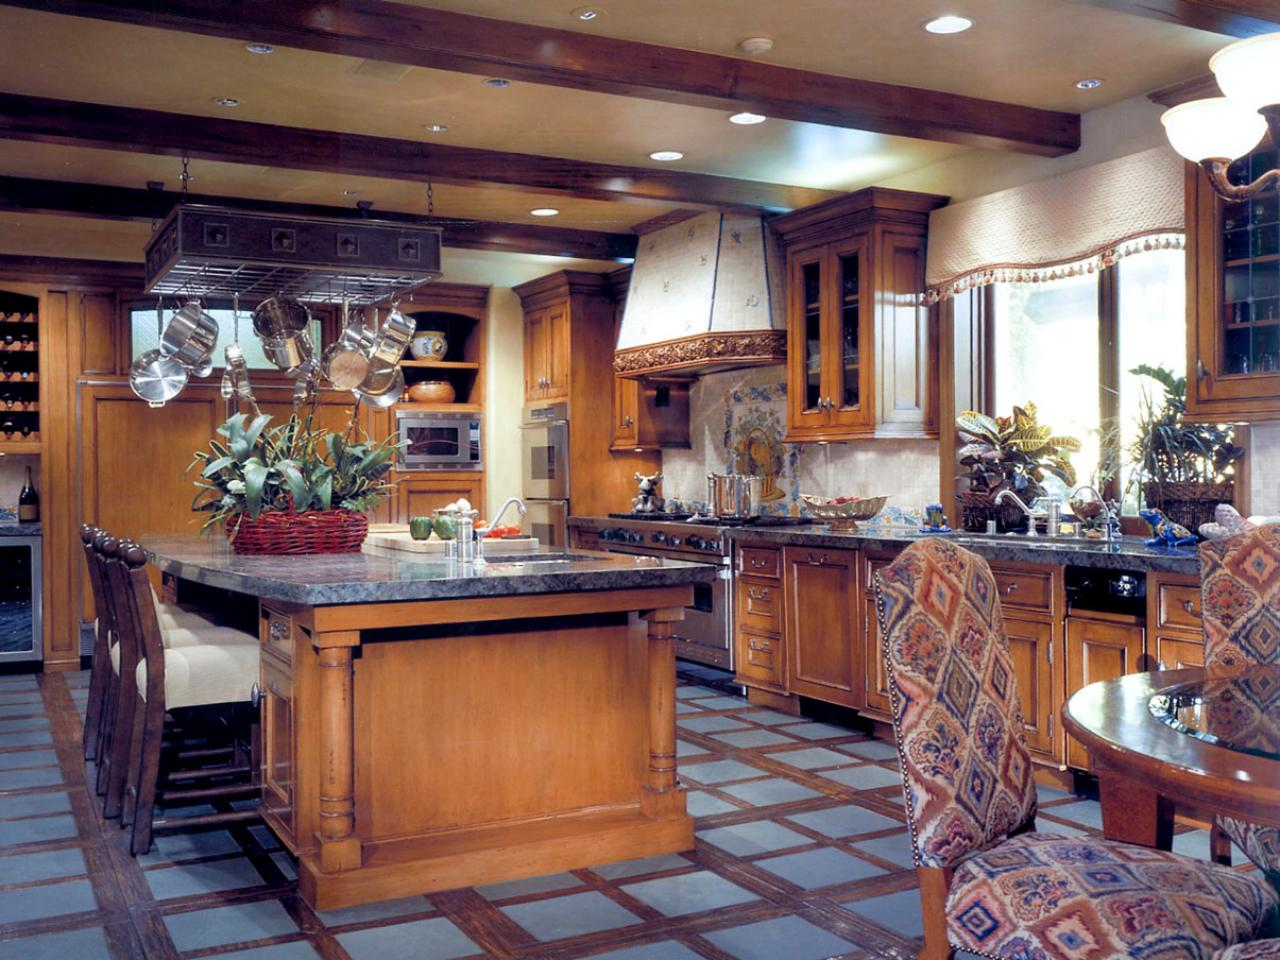 Kitchen remodeling where to splurge where to save hgtv for Floor designs